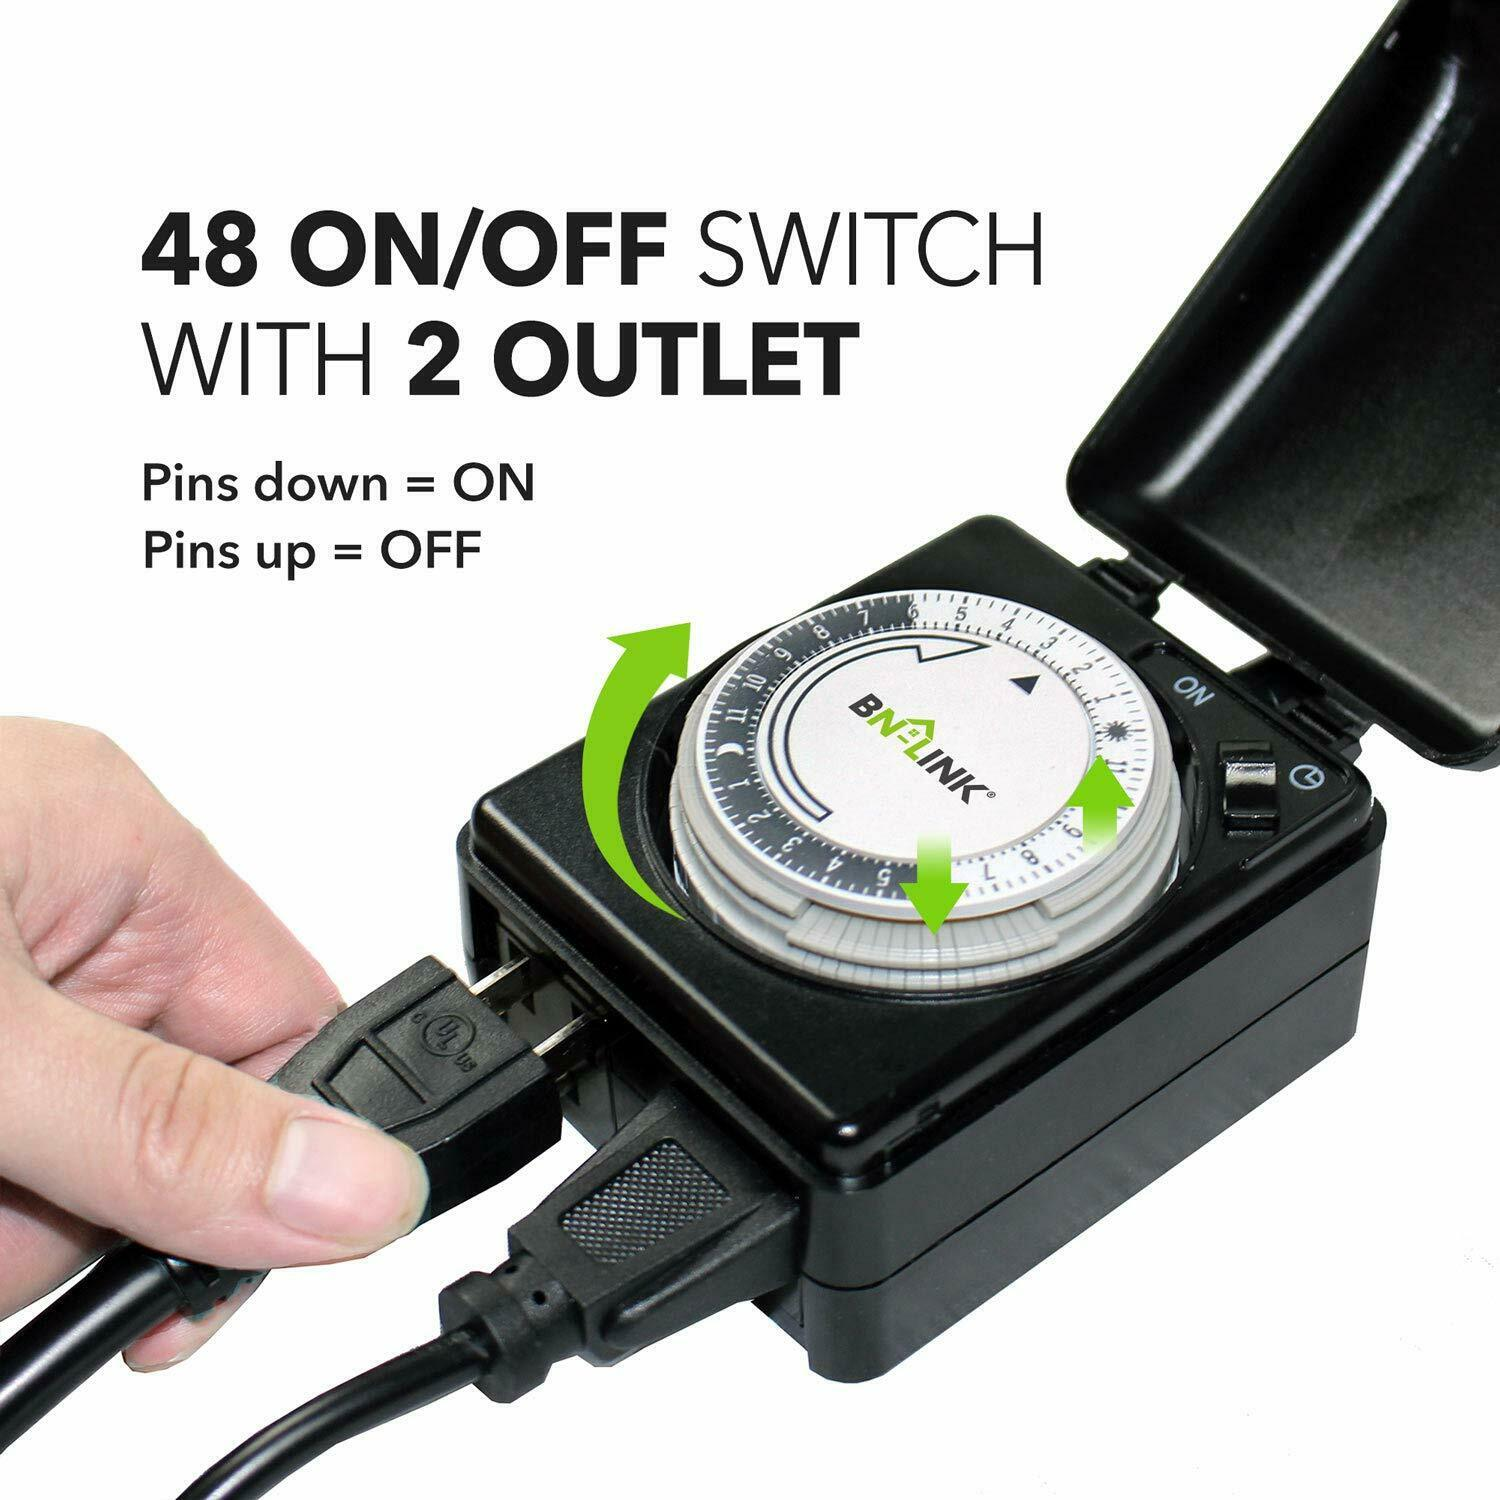 BN-LINK 24 Hour Mechanical Dual Outlet Outdoor Timer Plug in Heavy Duty Outlet